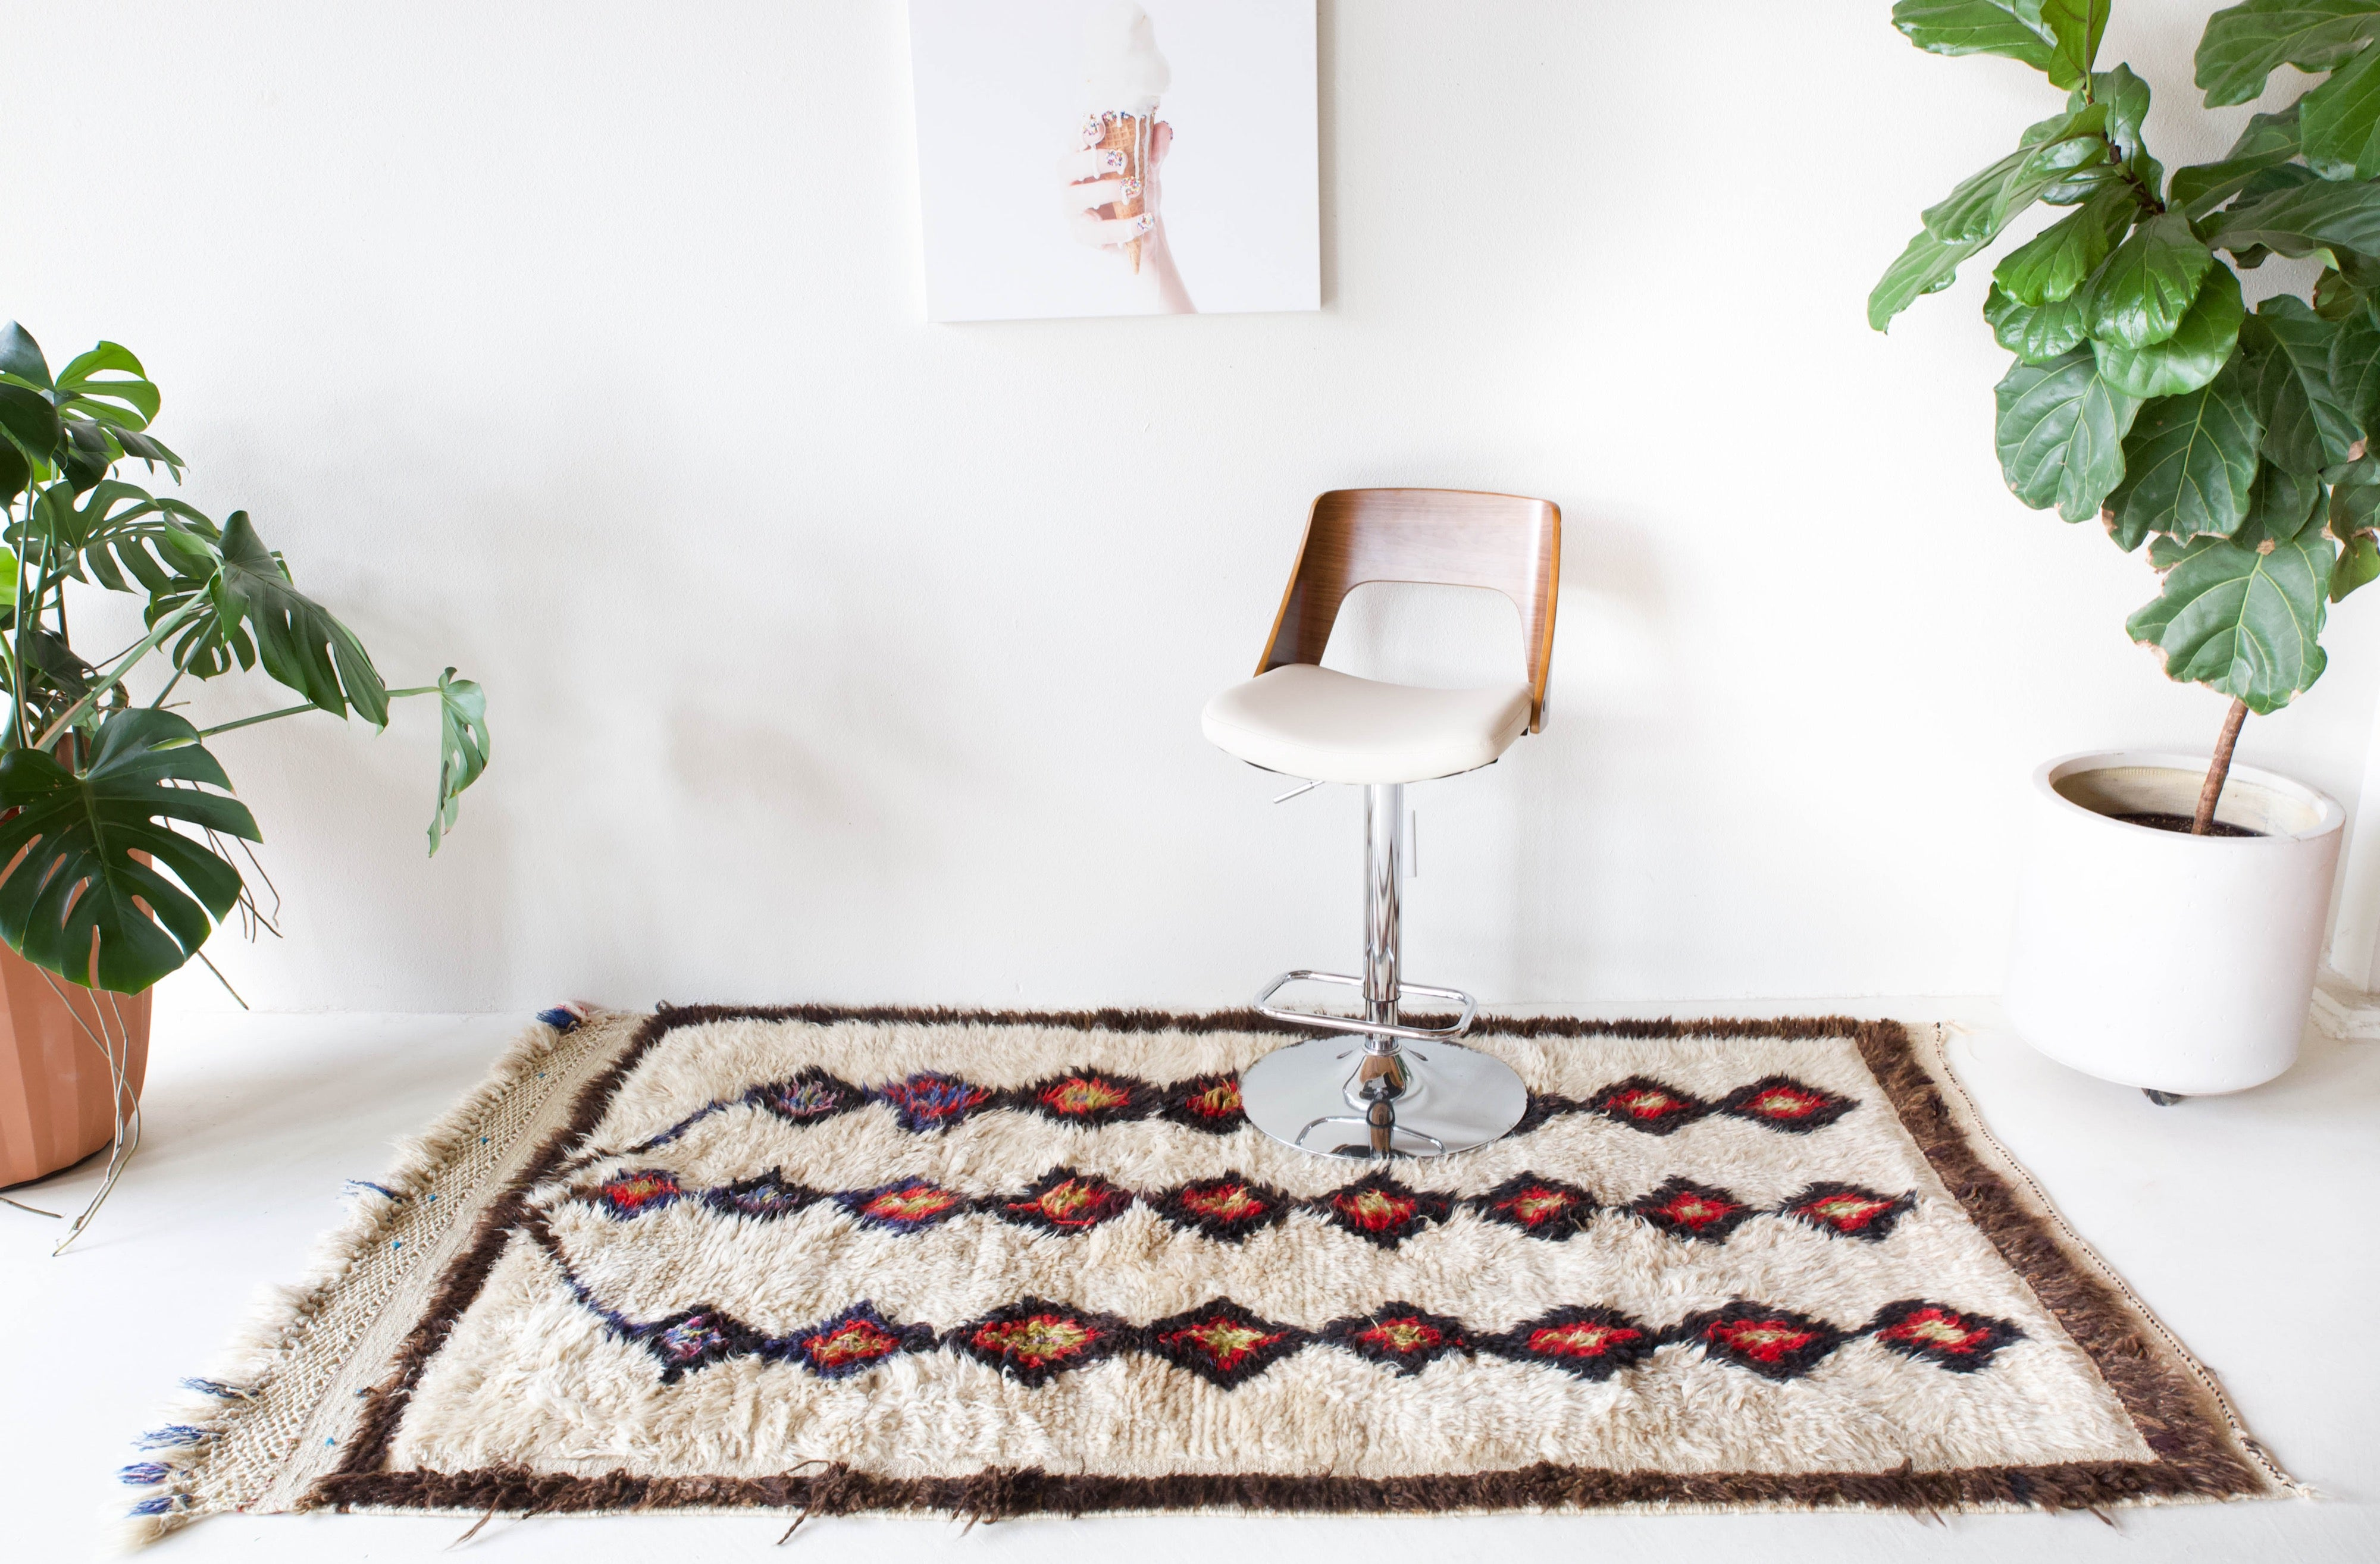 Area rug in a living room setting, pile rug, Turkish rug, custom rug, , new rug, modern rug, customizable rug, made to order rug, portland, rug shop, bright colors, wild shaman, soft rug, bold color, Portland, Oregon, rug store, rug shop, local shop, made in Turkey